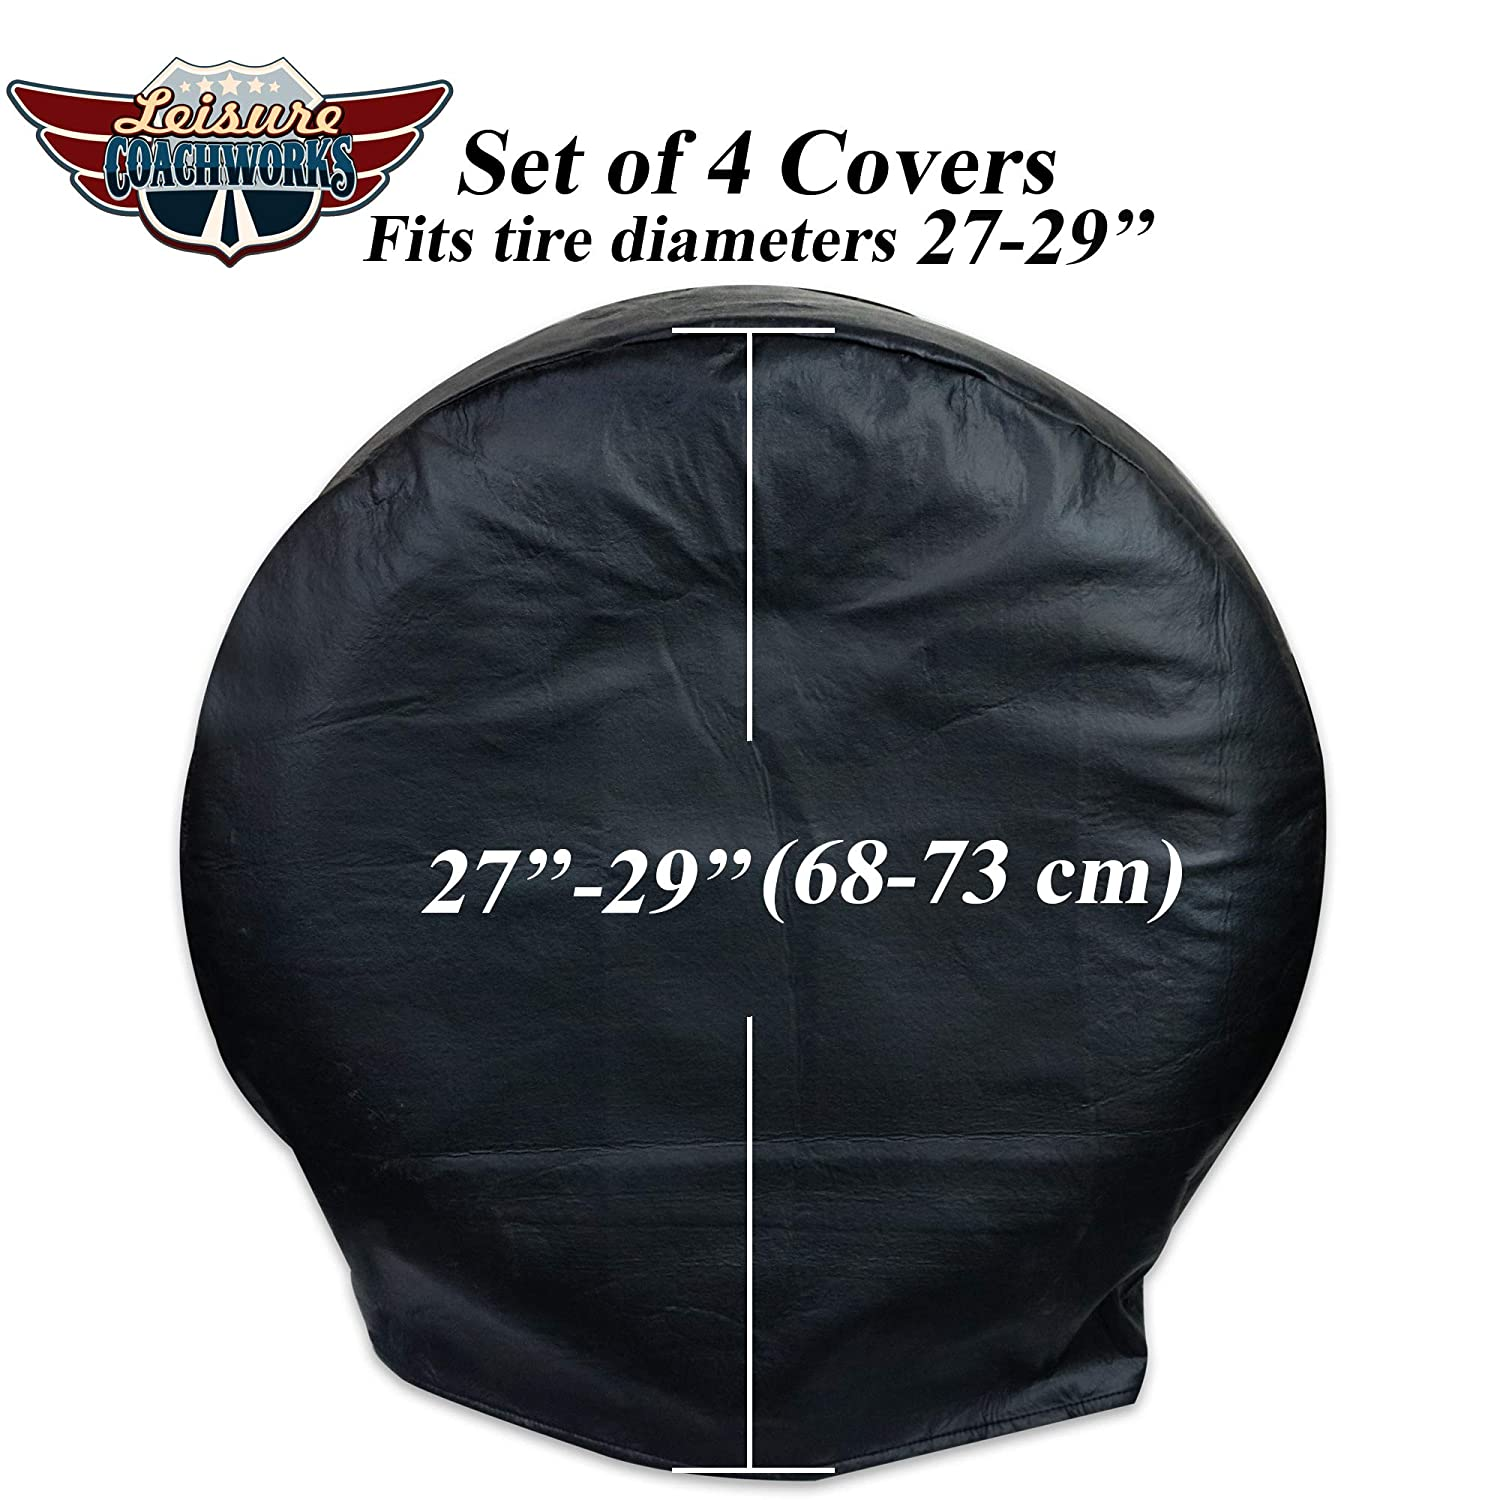 Leisure Coachworks Tire Covers for RV Wheel Set of 4 White Motorhome Wheel Covers Waterproof Soft Vinyl Tire Protectors Tire Covers Size 33 to 35 Tire Diameters